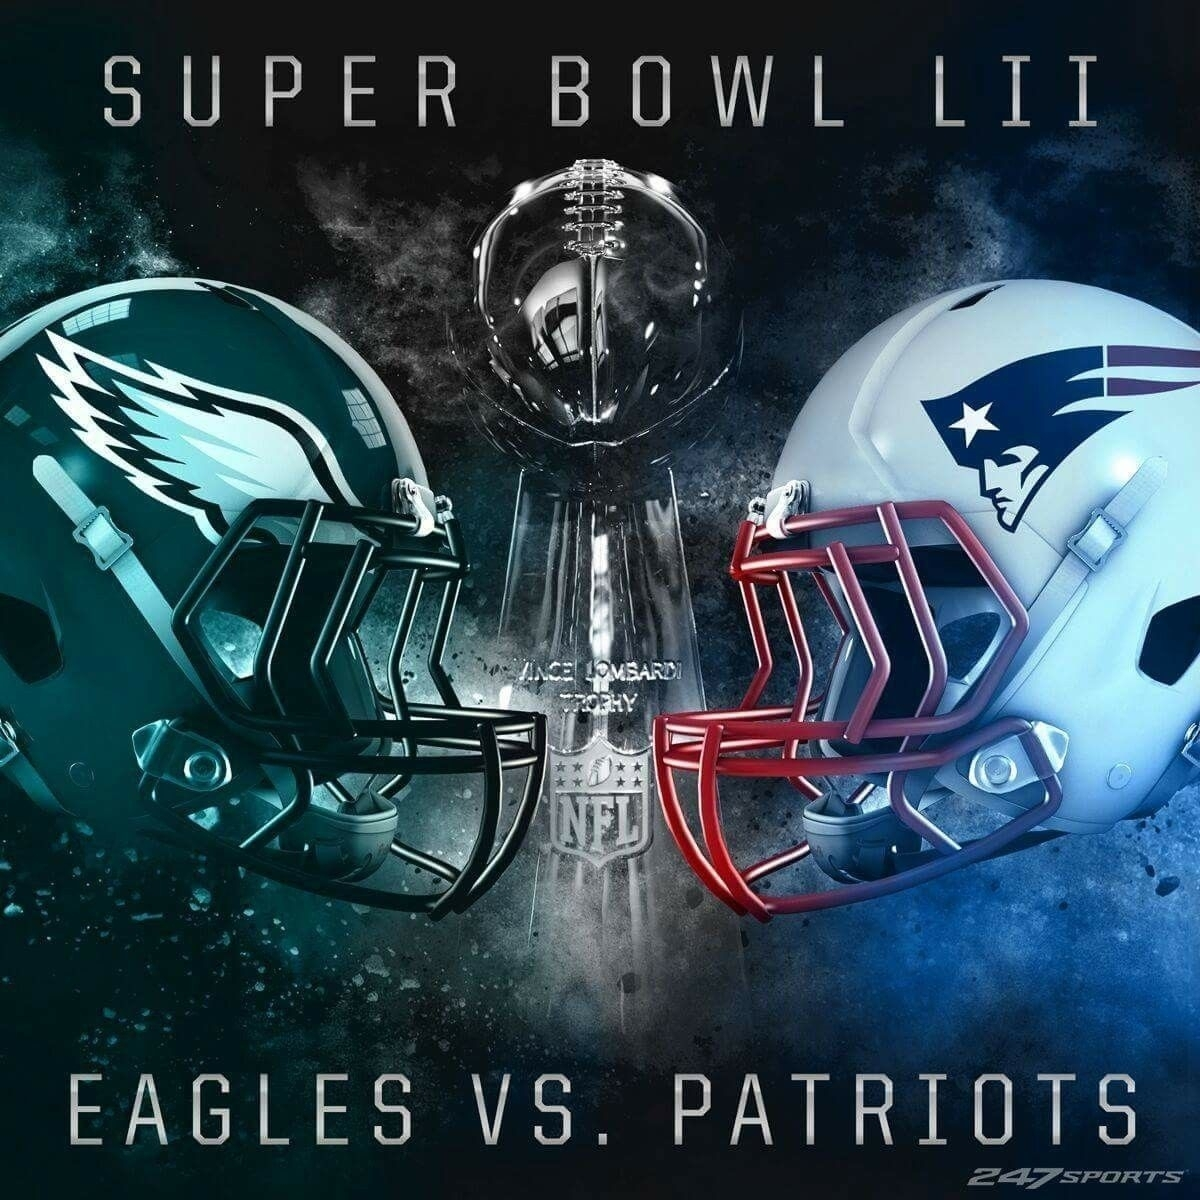 this is the battle, eagles and patriots on february 4, 2018